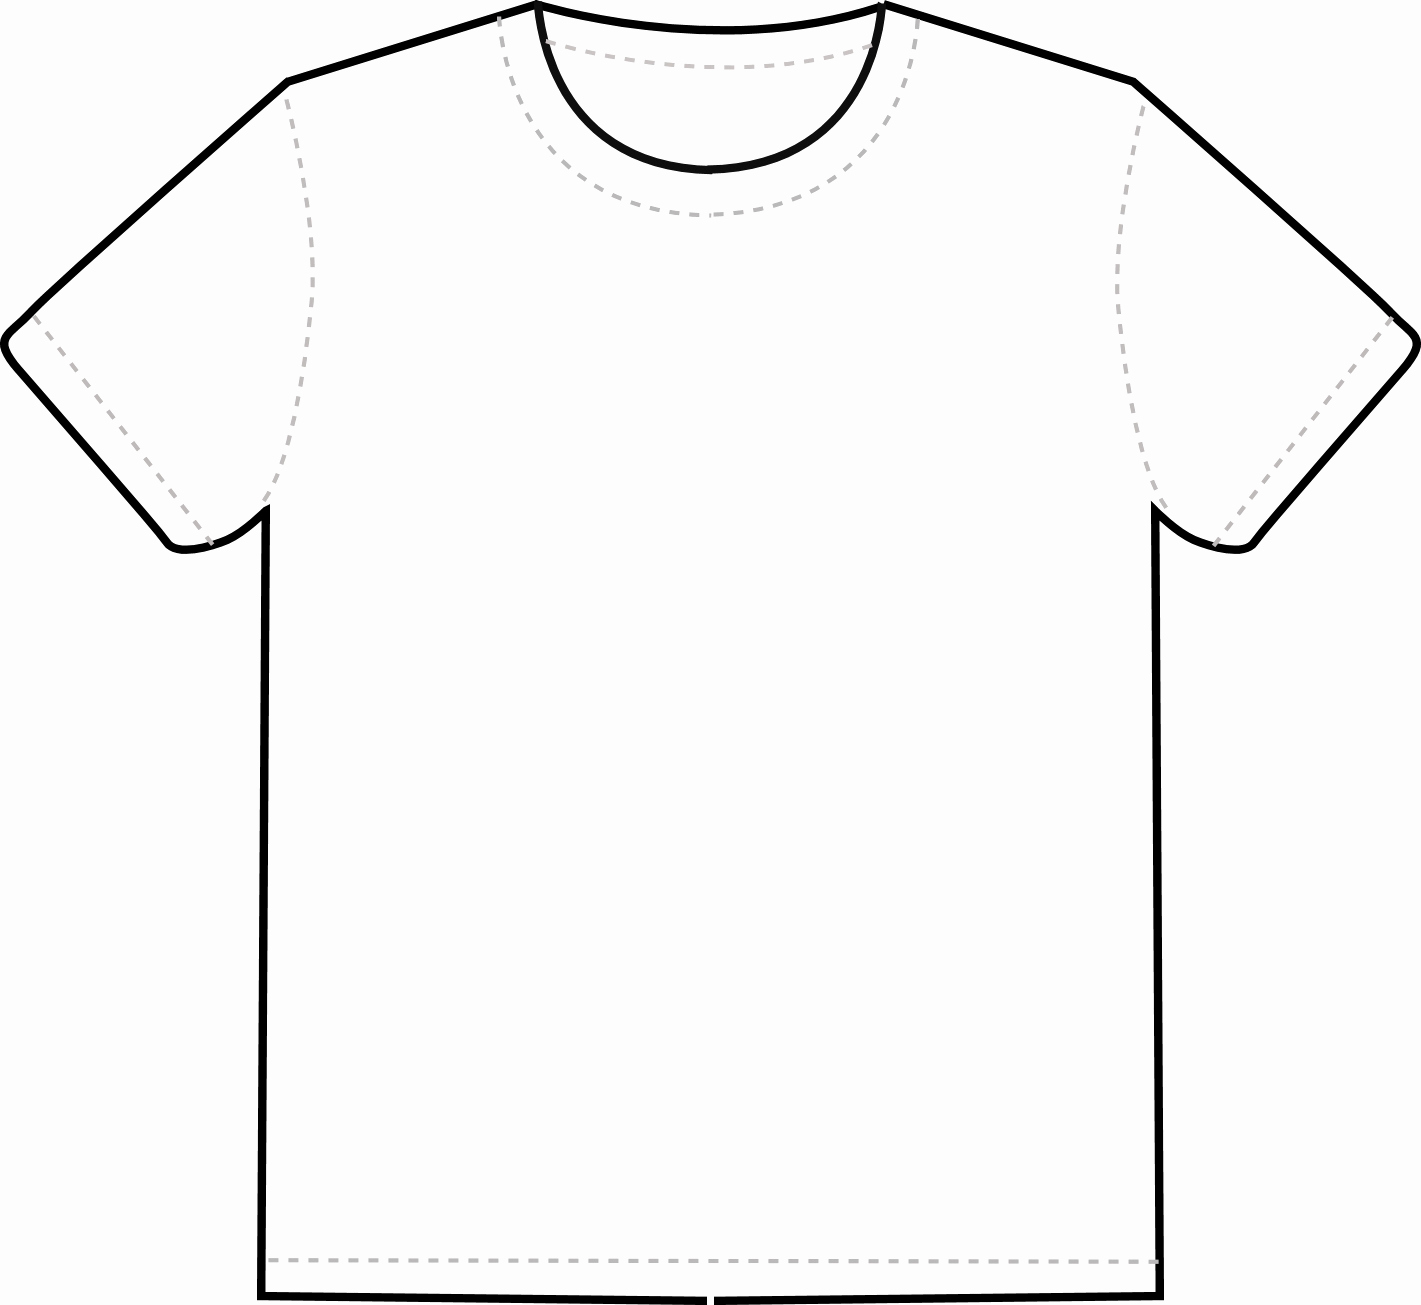 Printable T Shirt Templates Beautiful Blank Tshirt Template